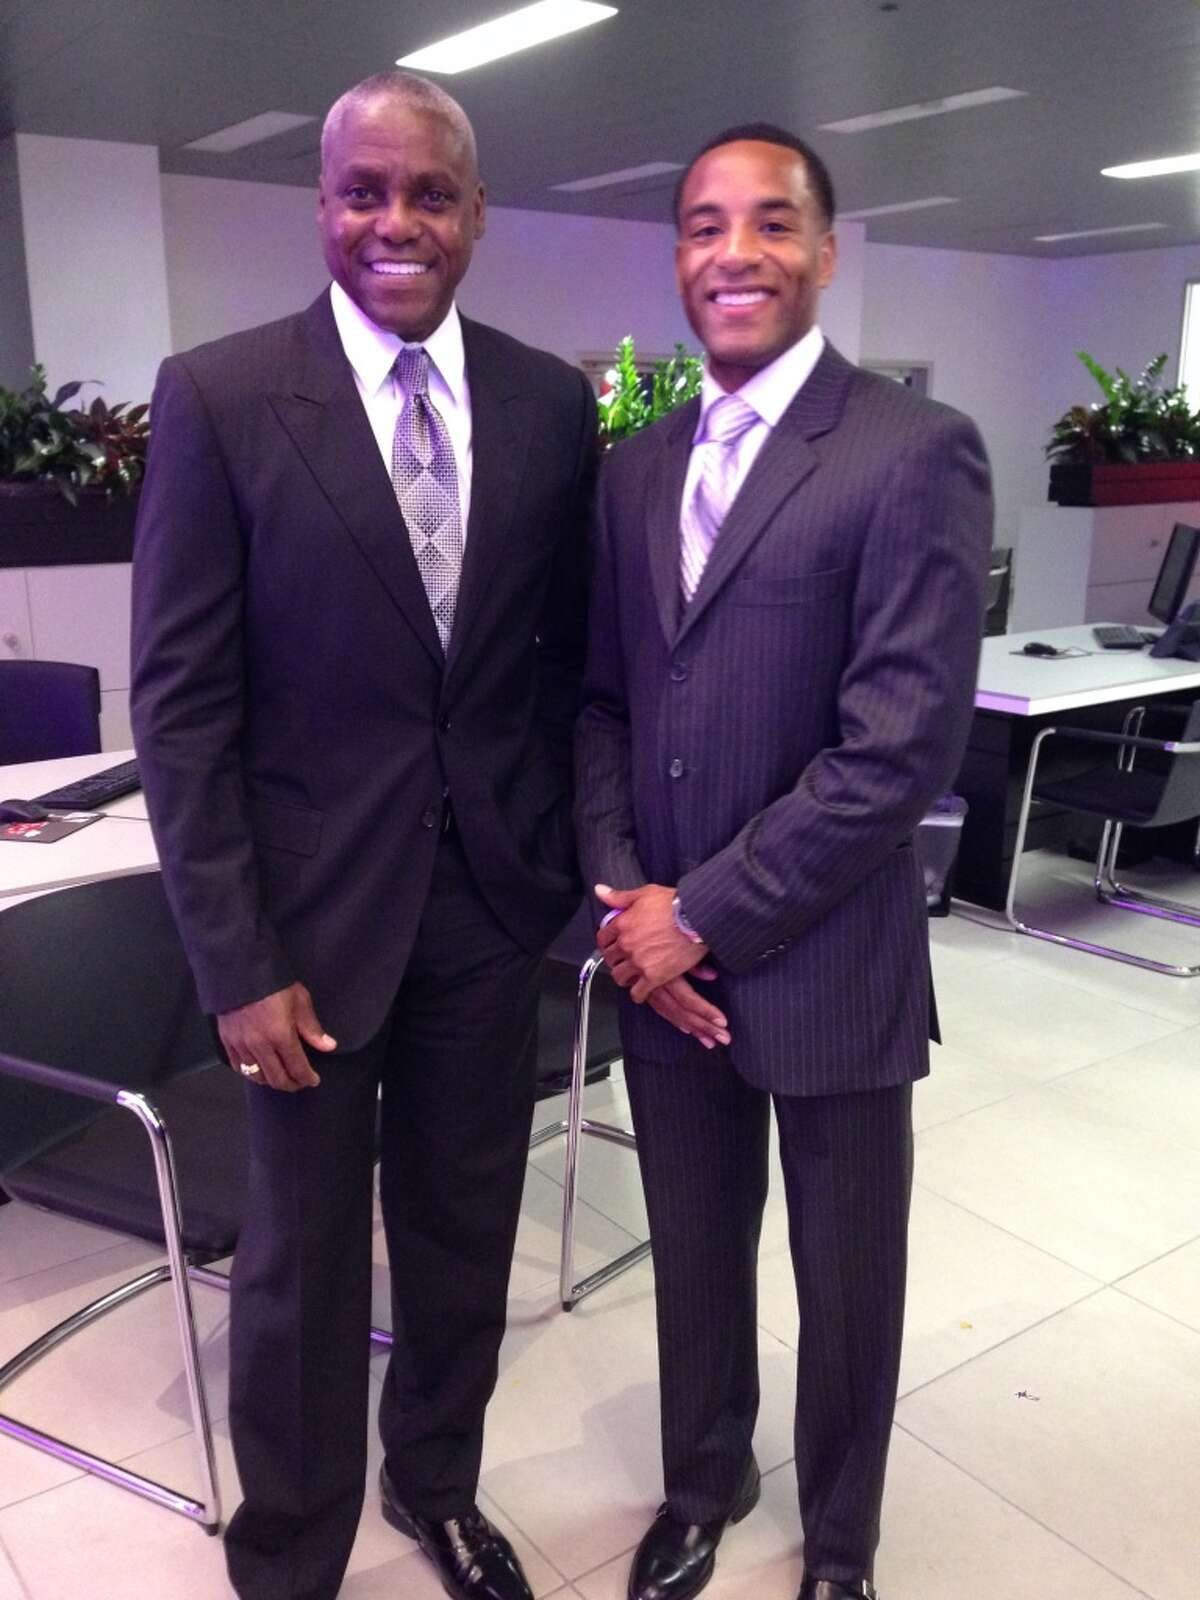 Carl Lewis and Tyrone Smith